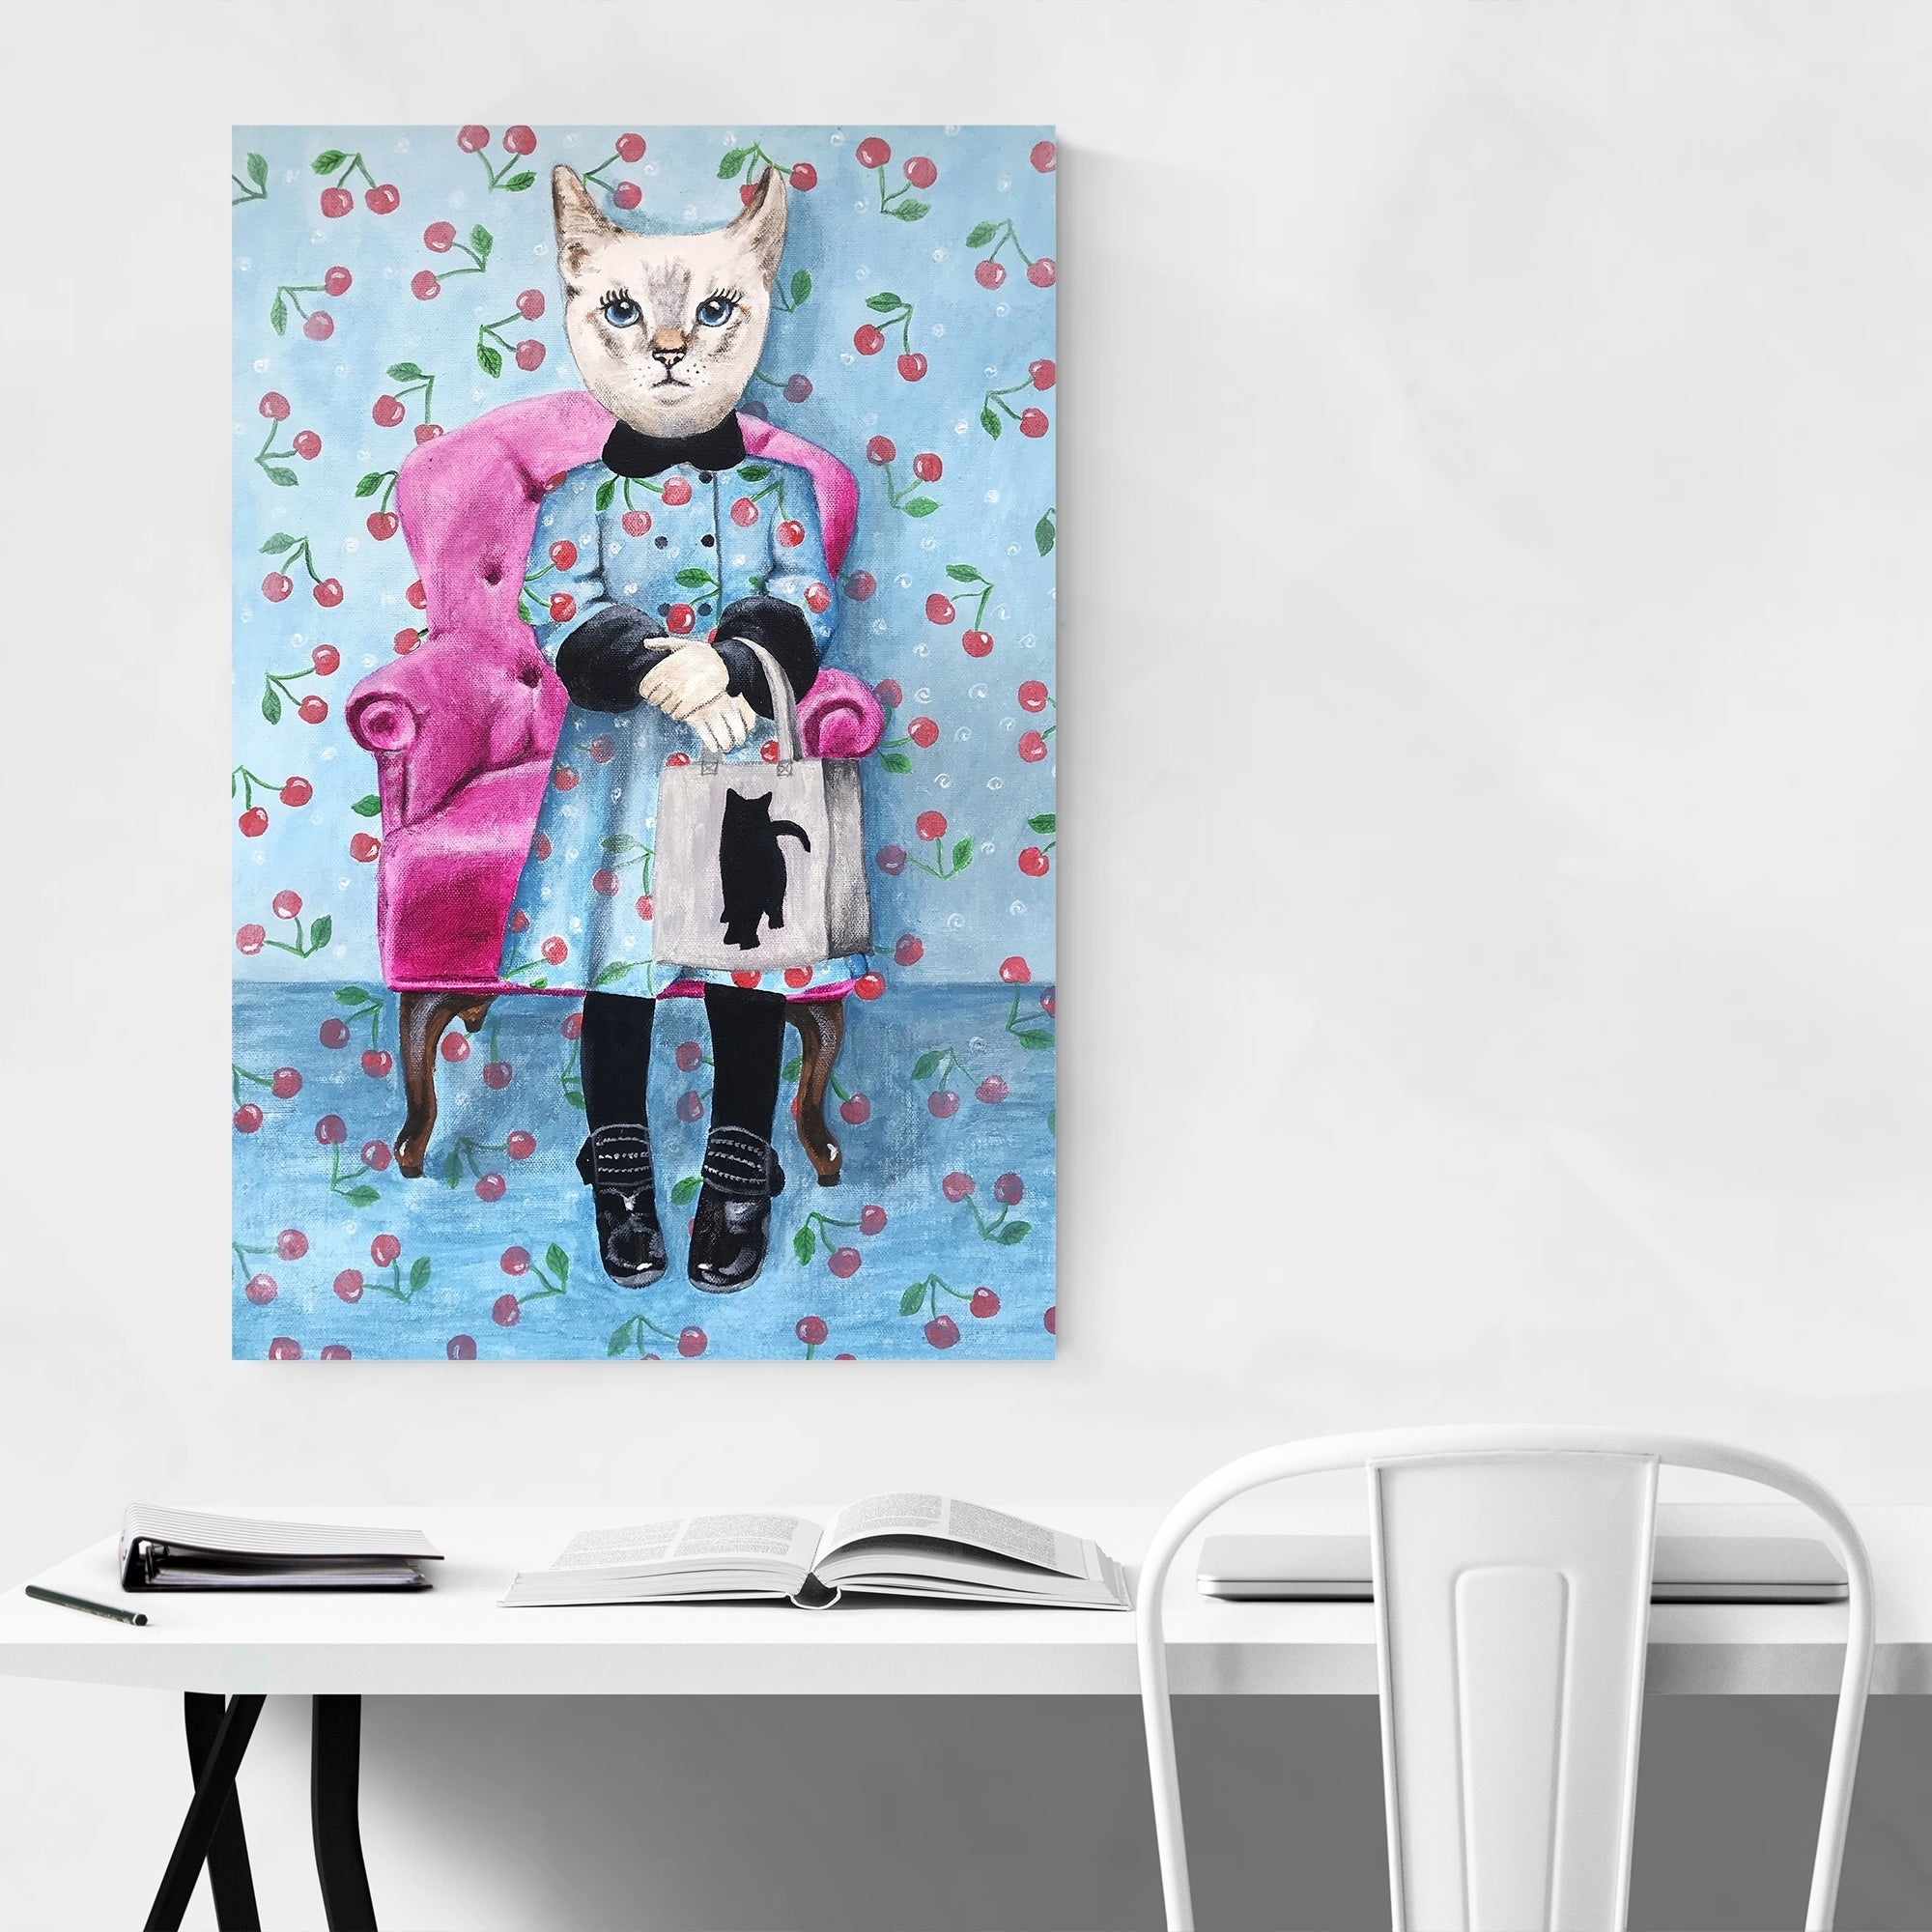 24x36 High Love Save Our Planet Art Poster Print Poster Art Poster Print Giraffes